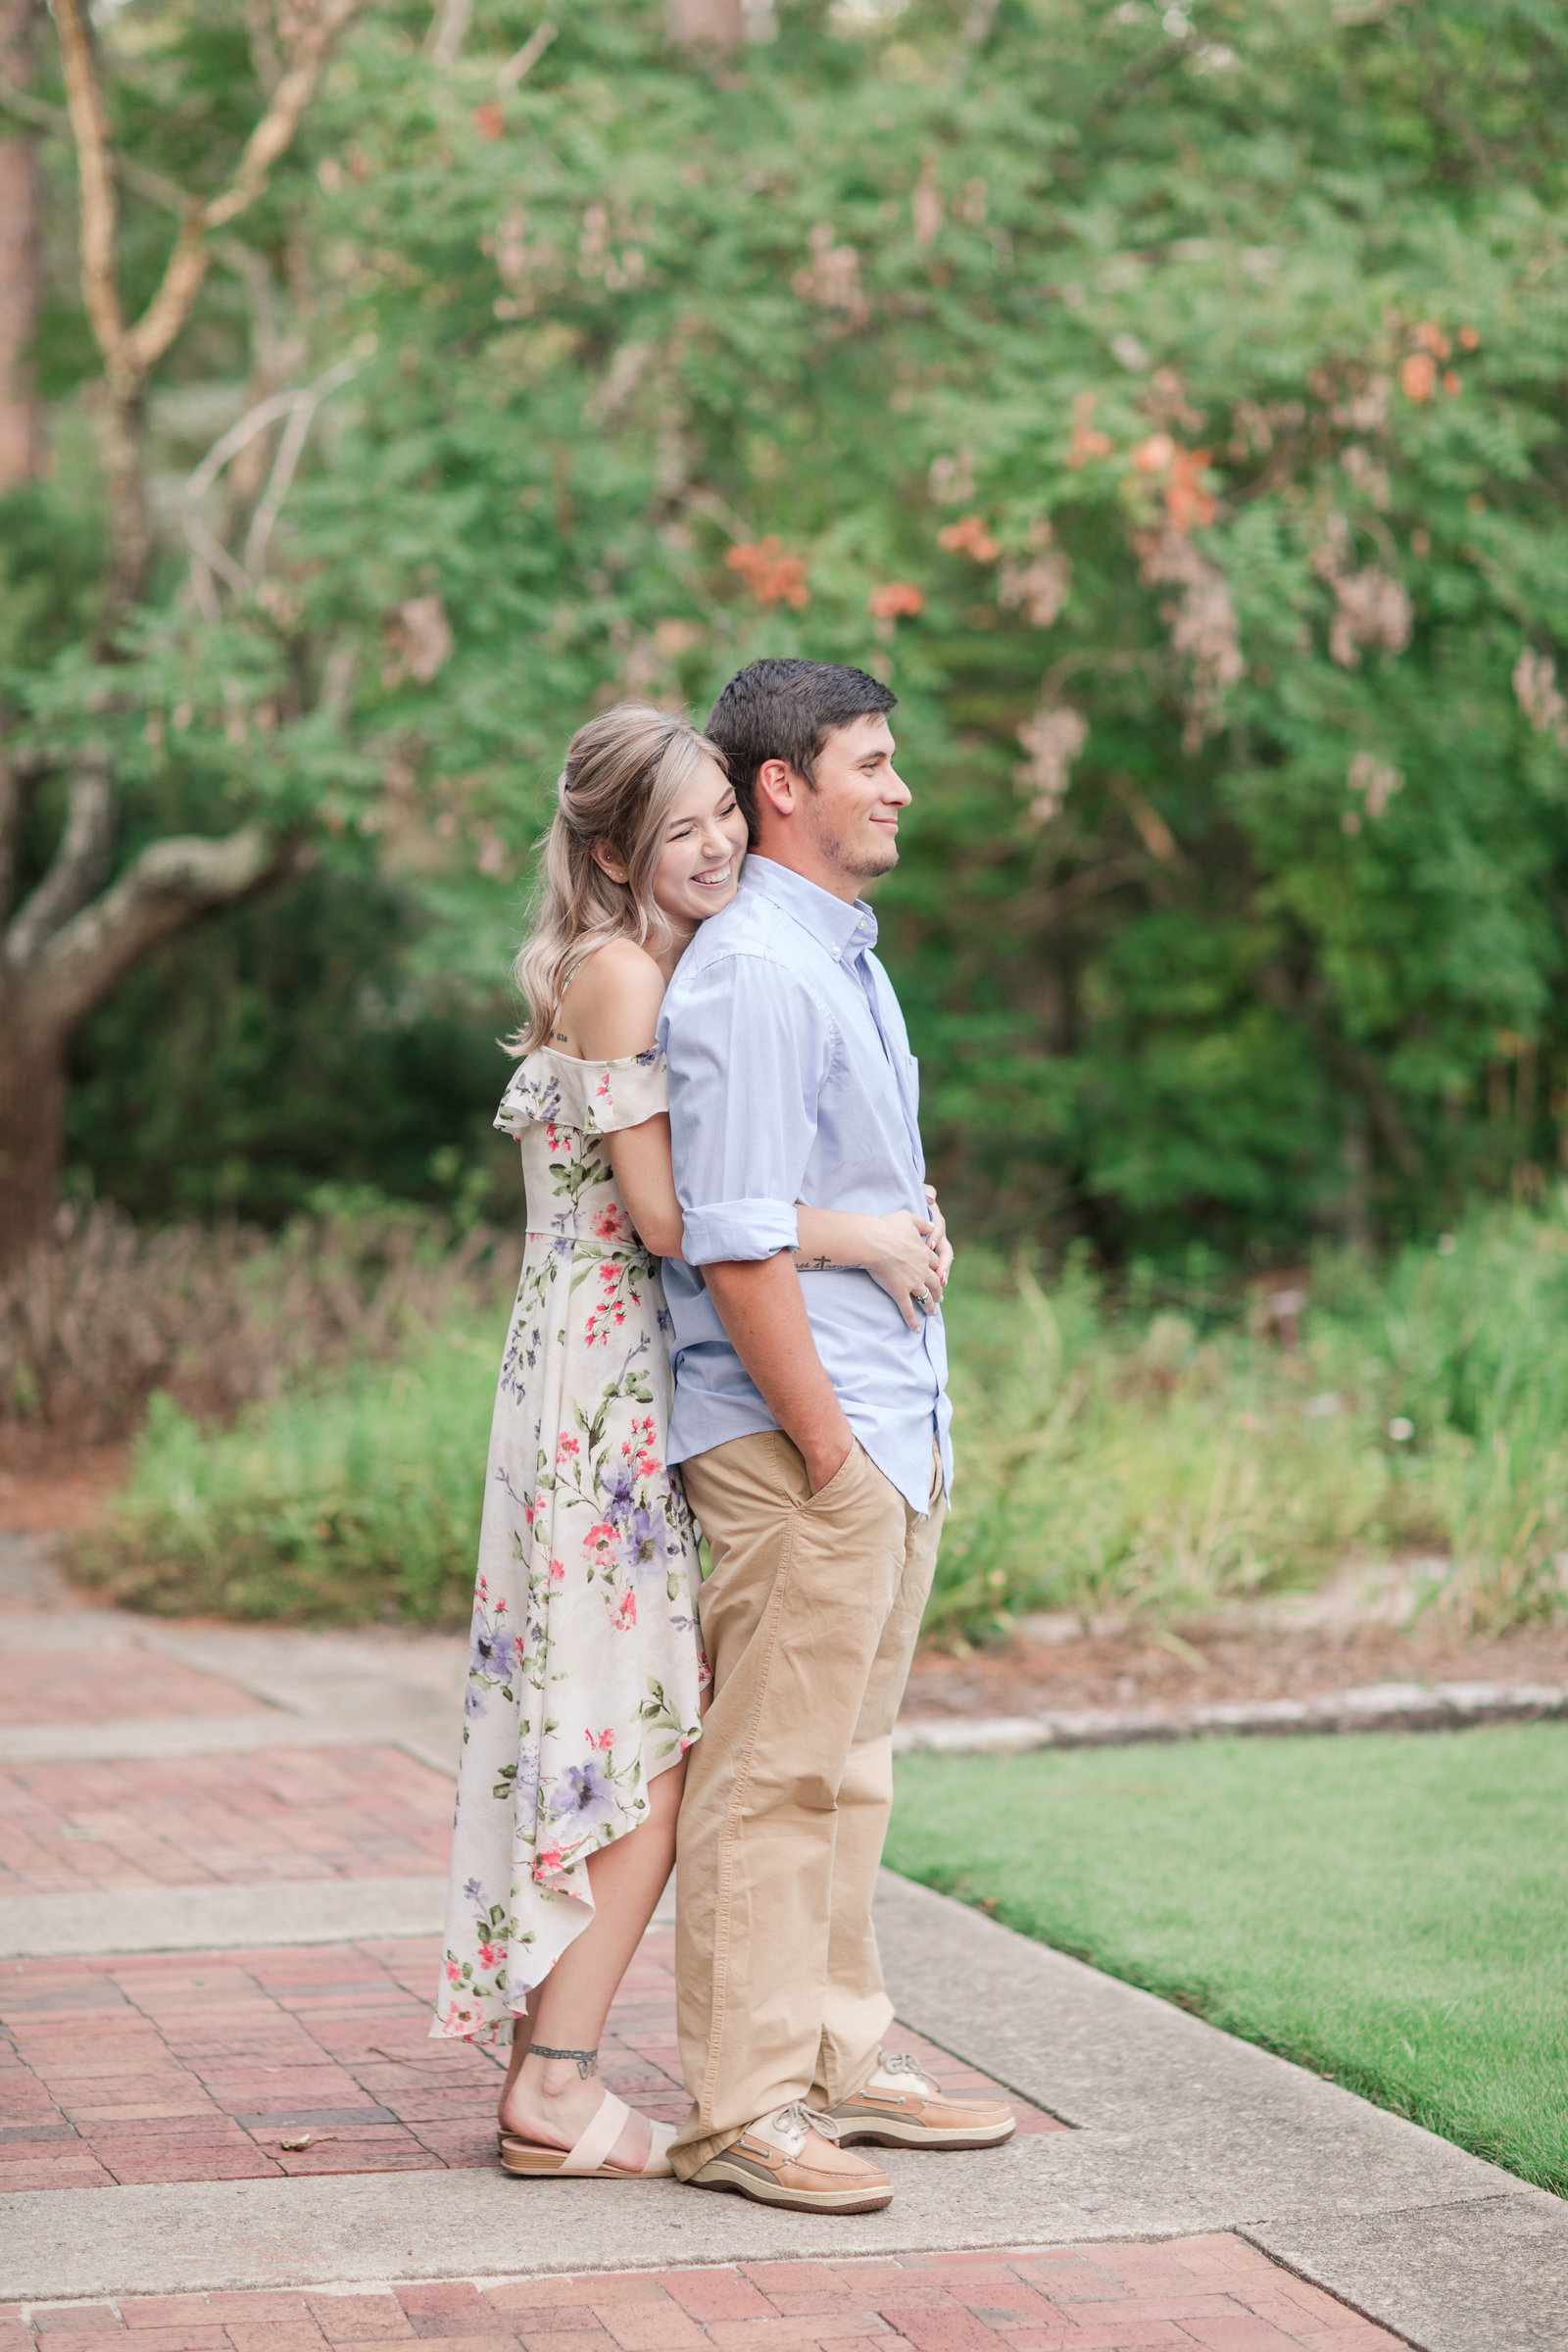 Jennifer B Photography-Sandhills Horticultural Gardens Engagement-Pinehurst NC-Cody and Kayla-2019-0034